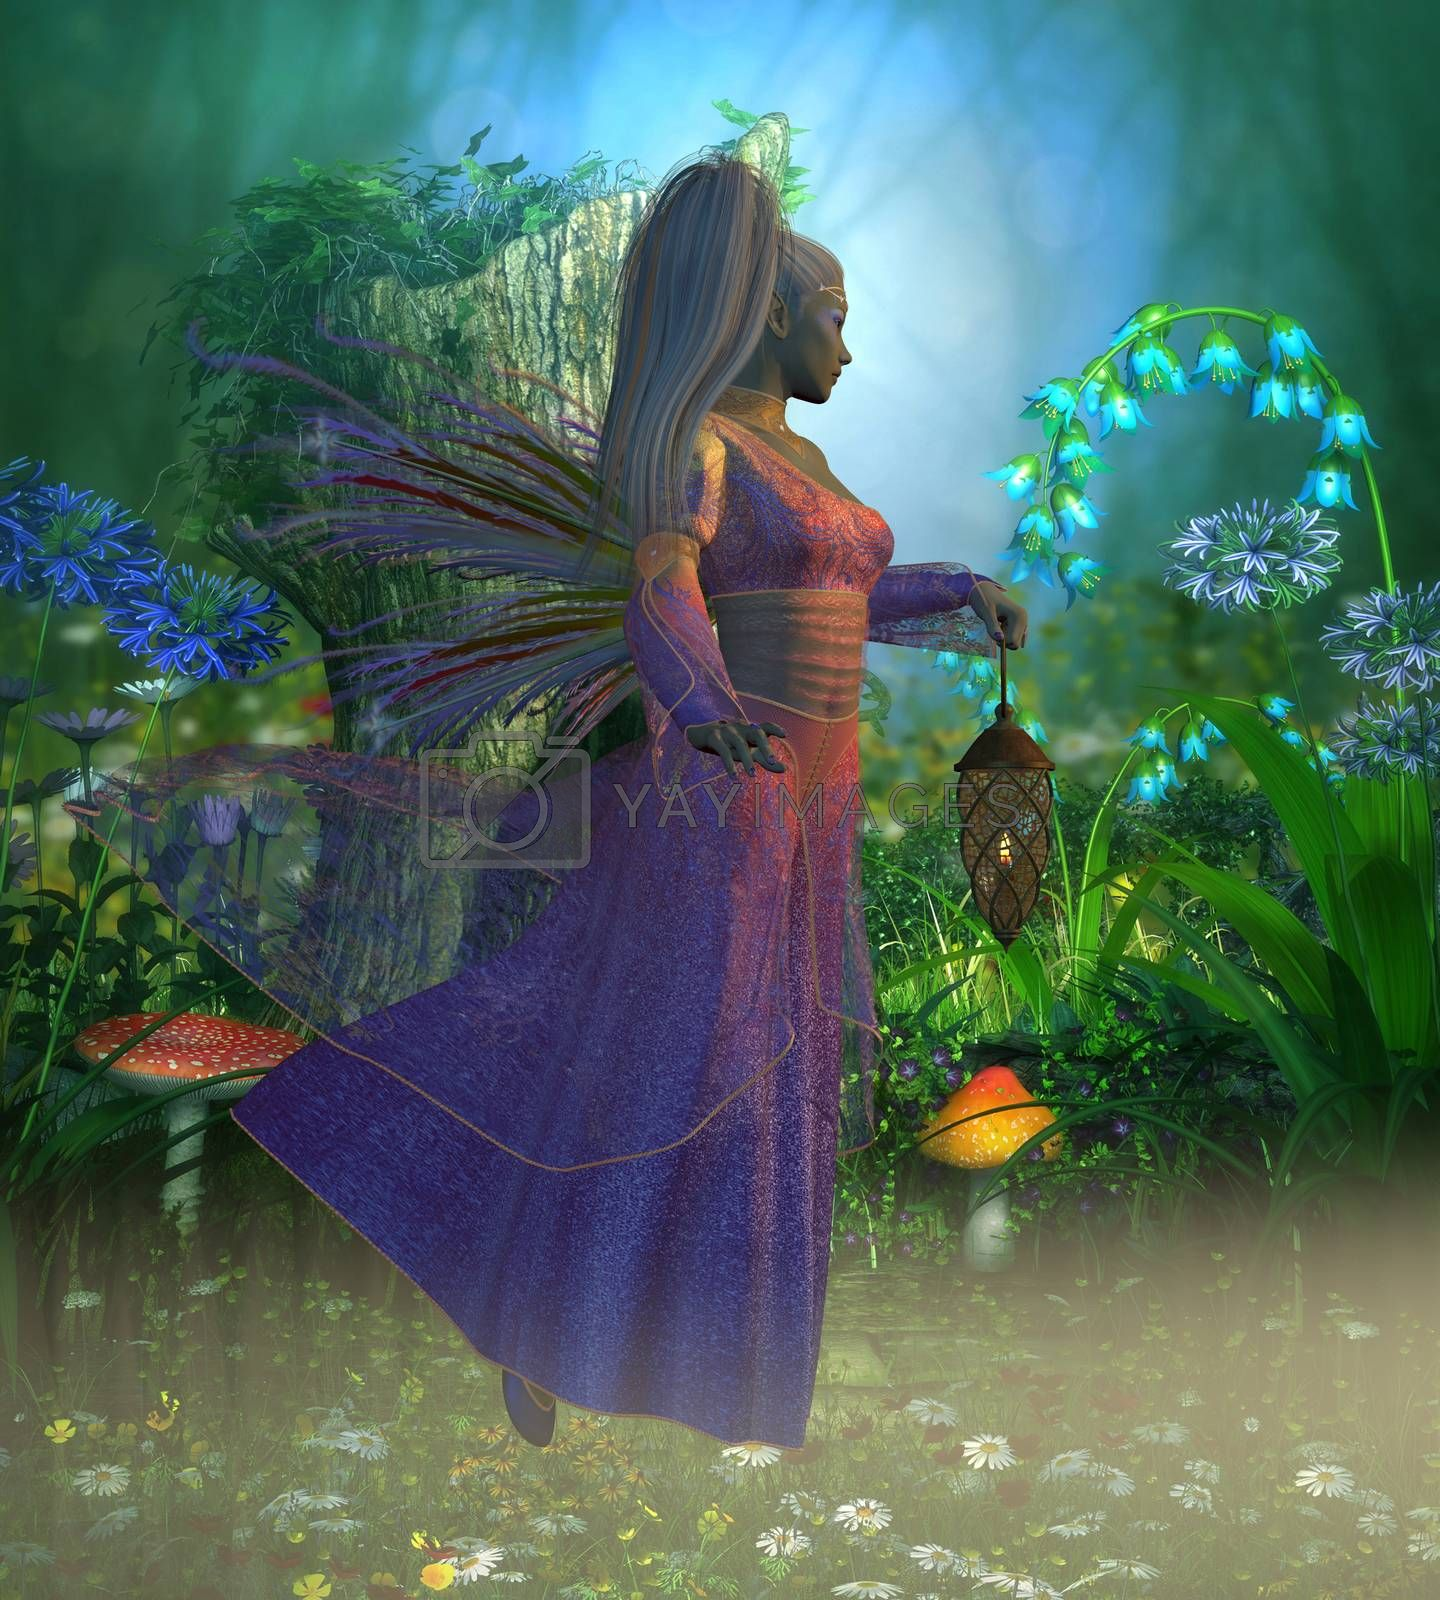 Fairy Laryn flies through the misty forest in the evening holding a bright lantern to light her way.